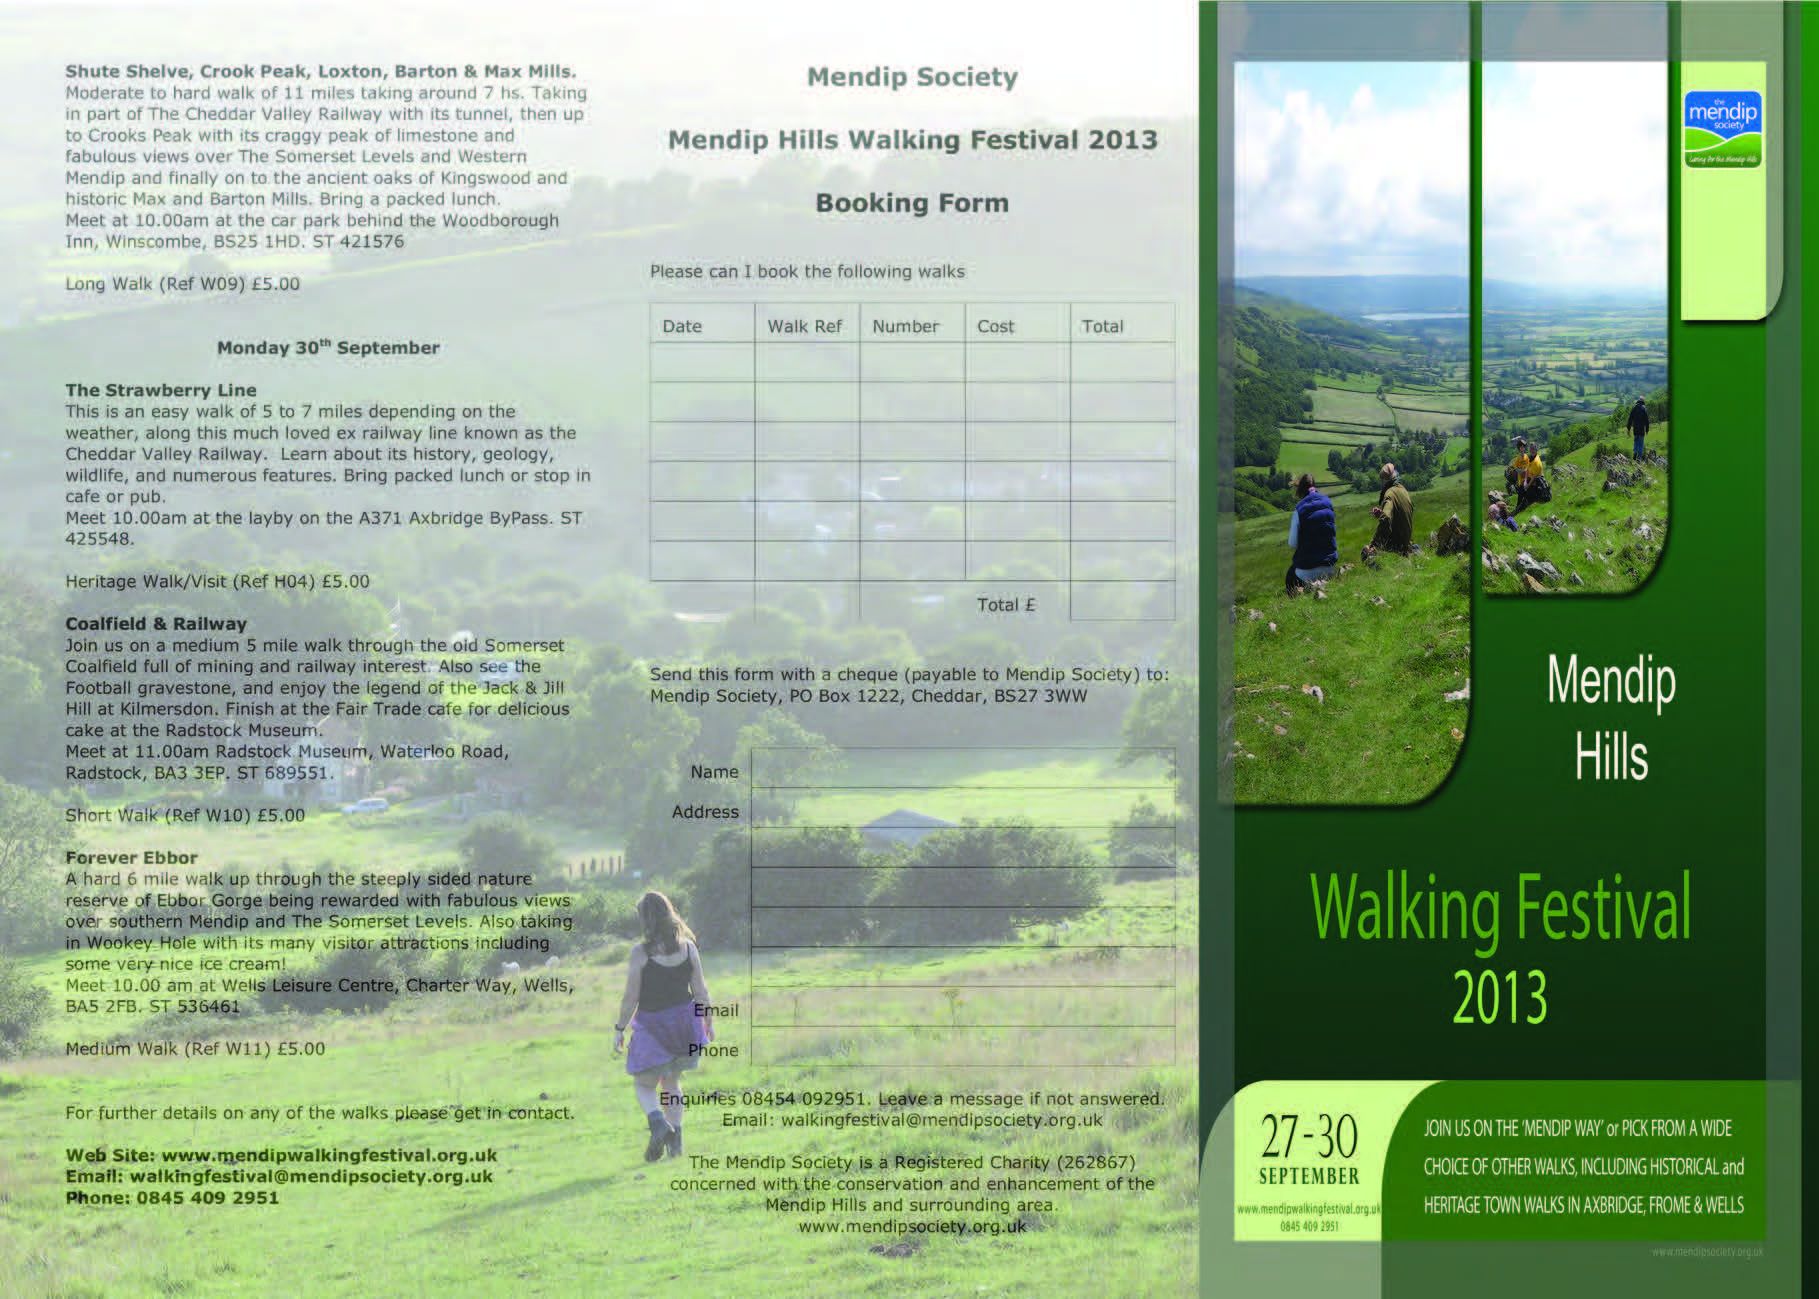 WalkingFestival2013Leaflet Page 1